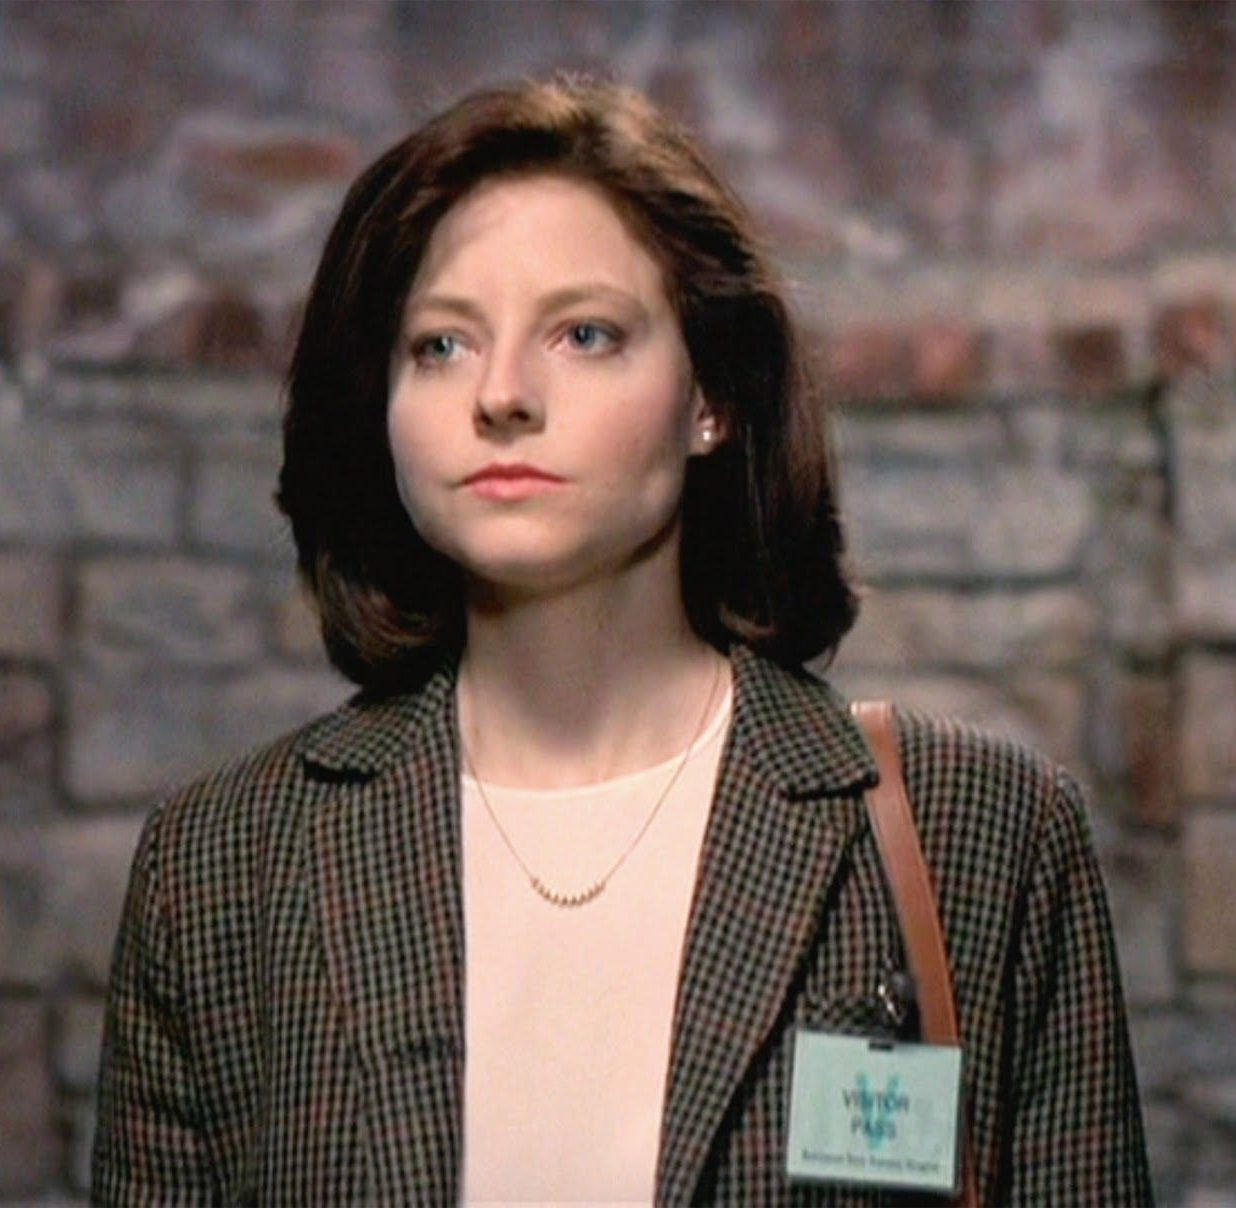 silence 1 e1602091738365 20 Things You Never Knew About Meg Ryan